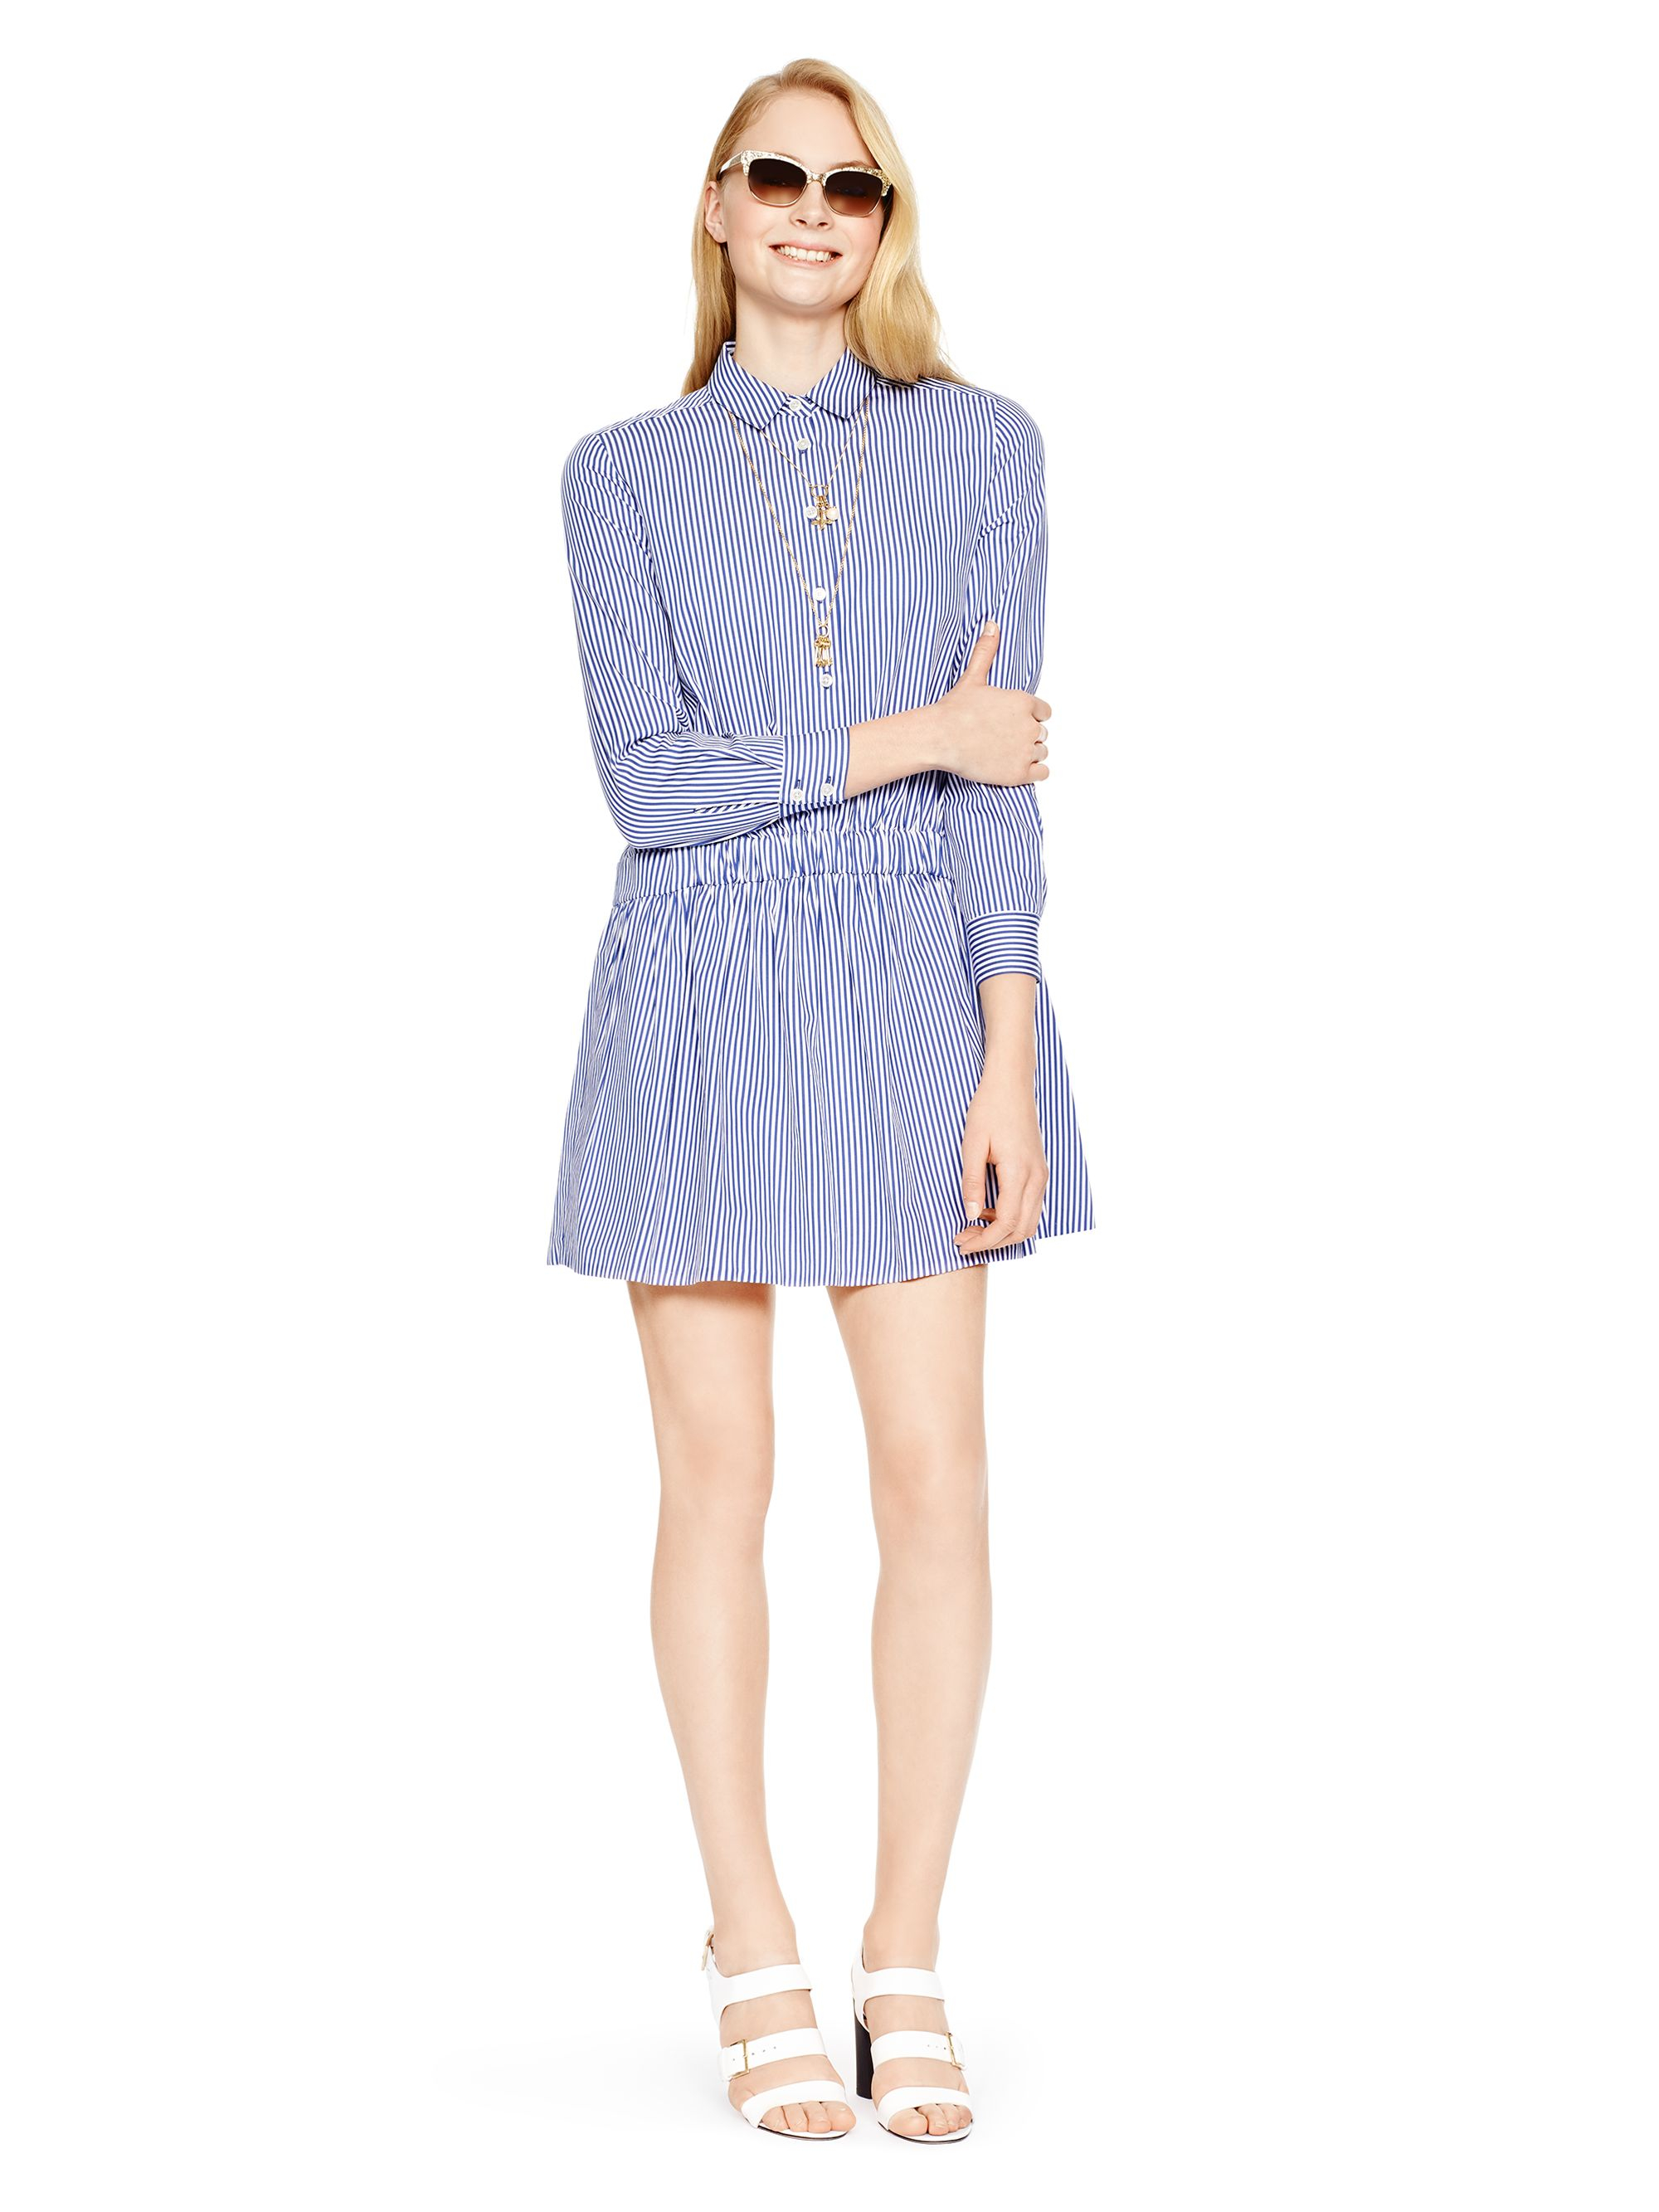 Lyst kate spade new york stripe shirtdress in blue for New york and company dress shirts